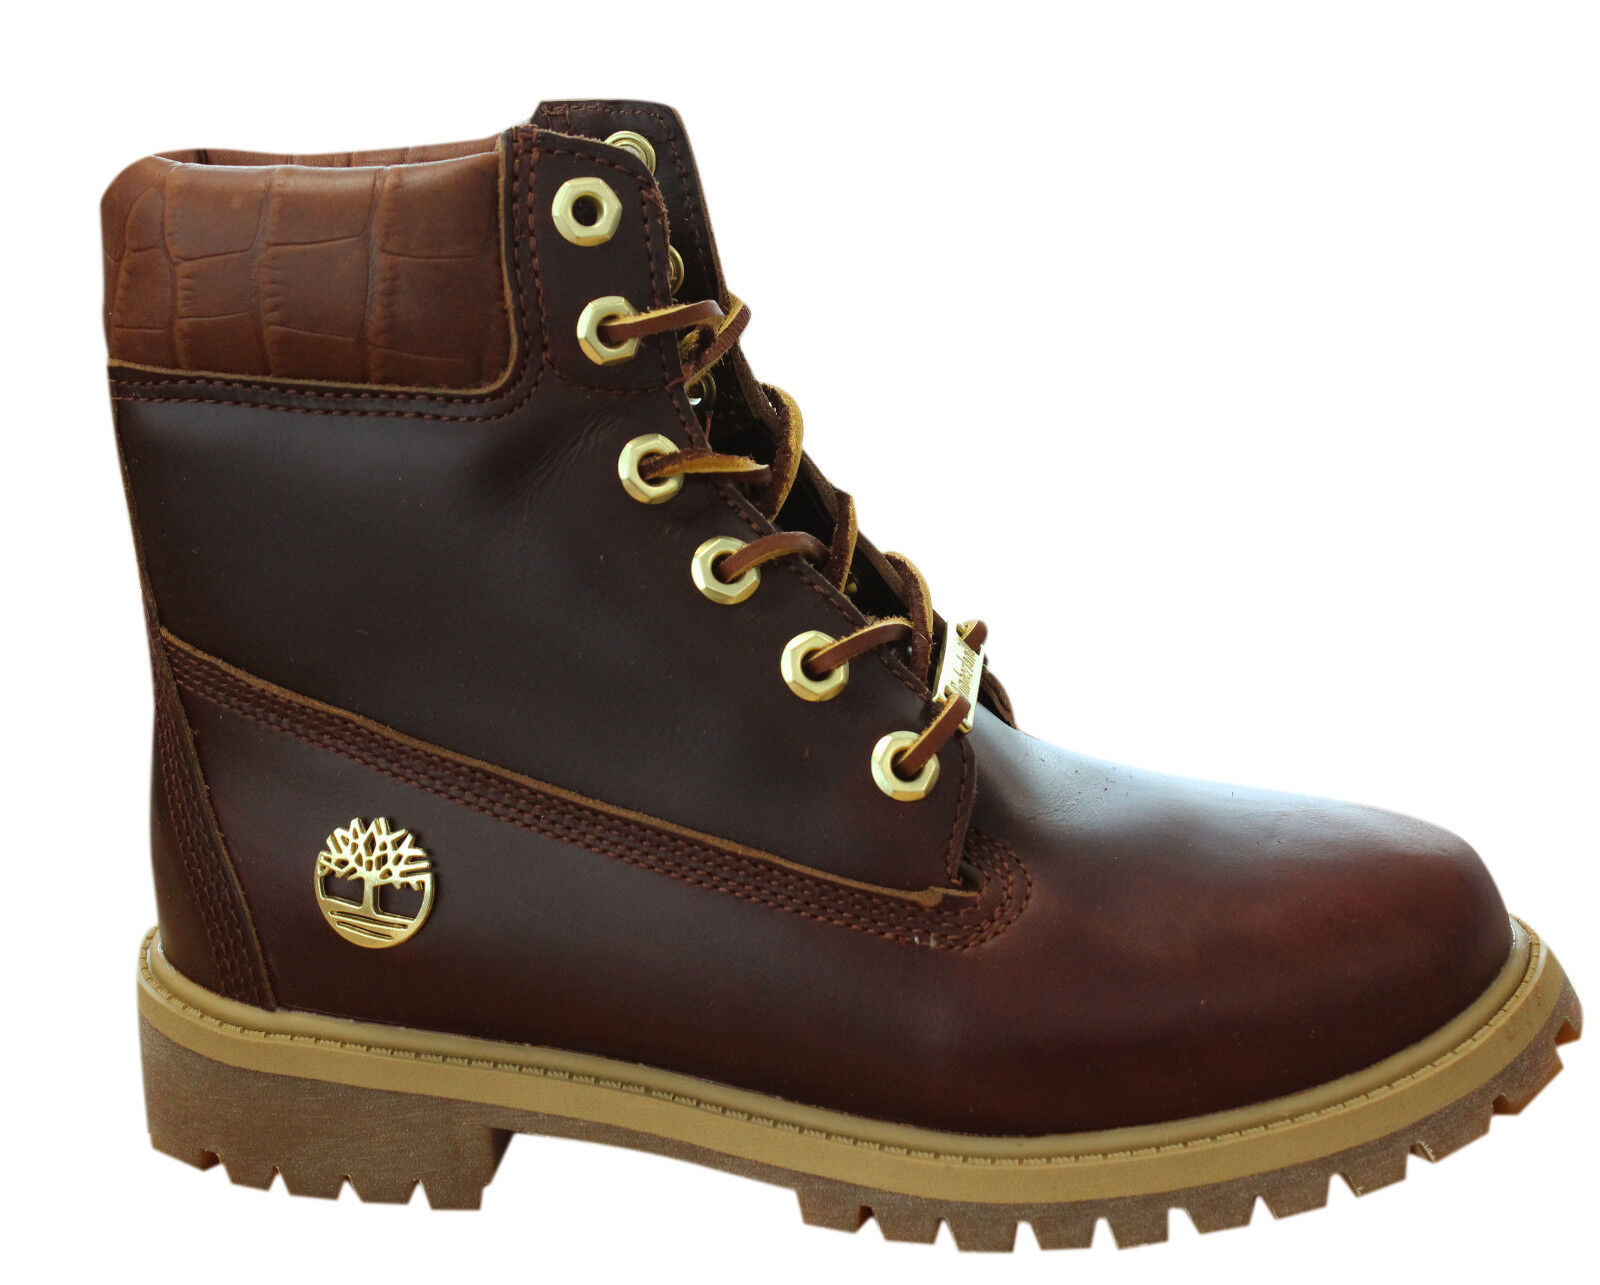 7650651f198 Details about Timberland 6 Inch Premium Limited Release Juniors Waterproof  Boot A1PLD B32A